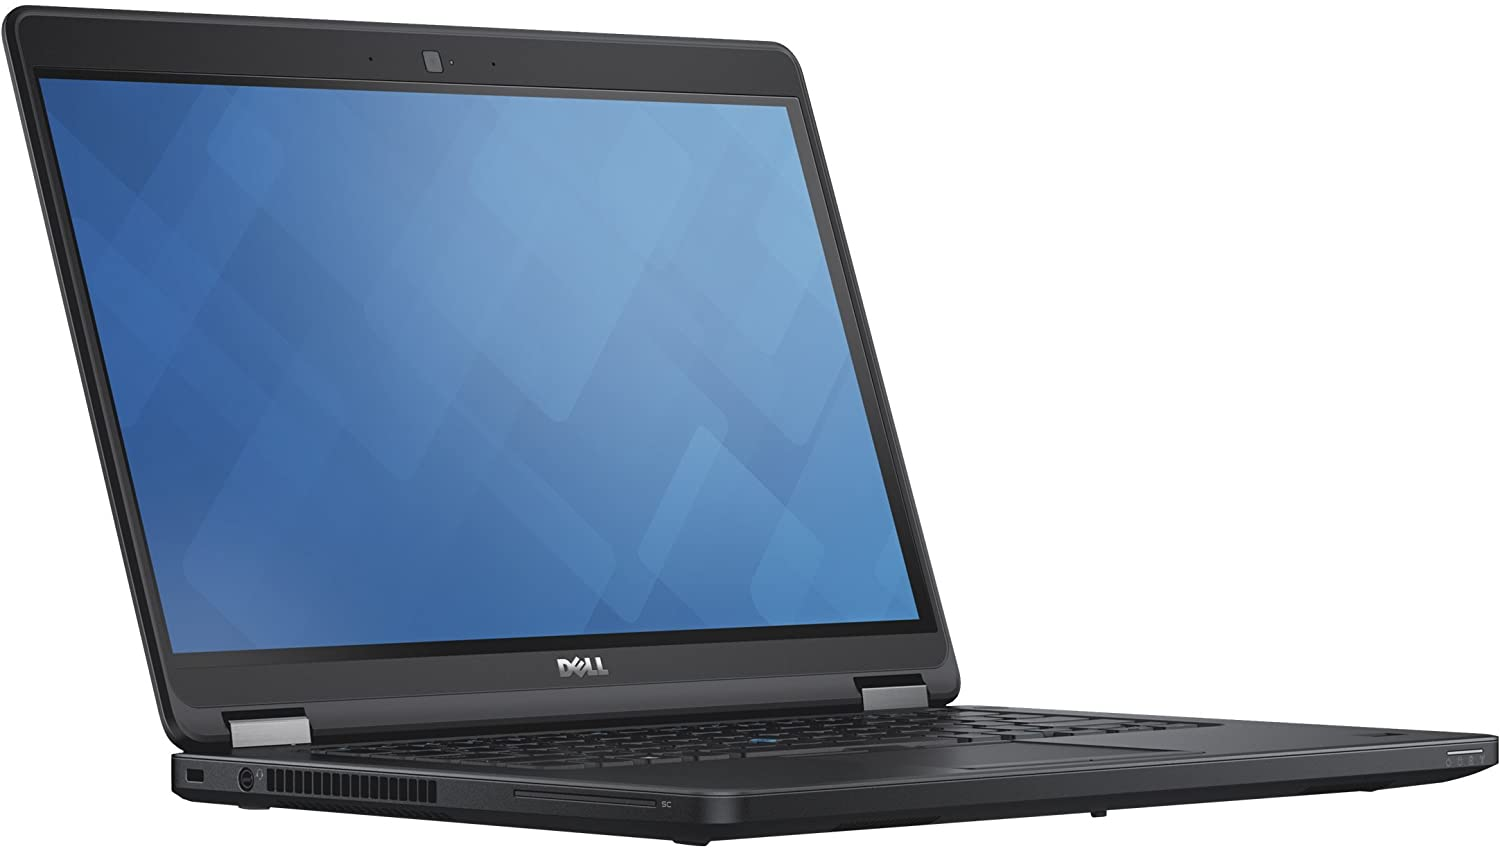 Dell Latitude E5450 HD Business Laptop NoteBook PC (Intel Quad Core i5-5300U, 8GB Ram, 500GB Hard Drive, HDMI, VGA, Camera, WIFI) Win 10 Pro (Renewed)